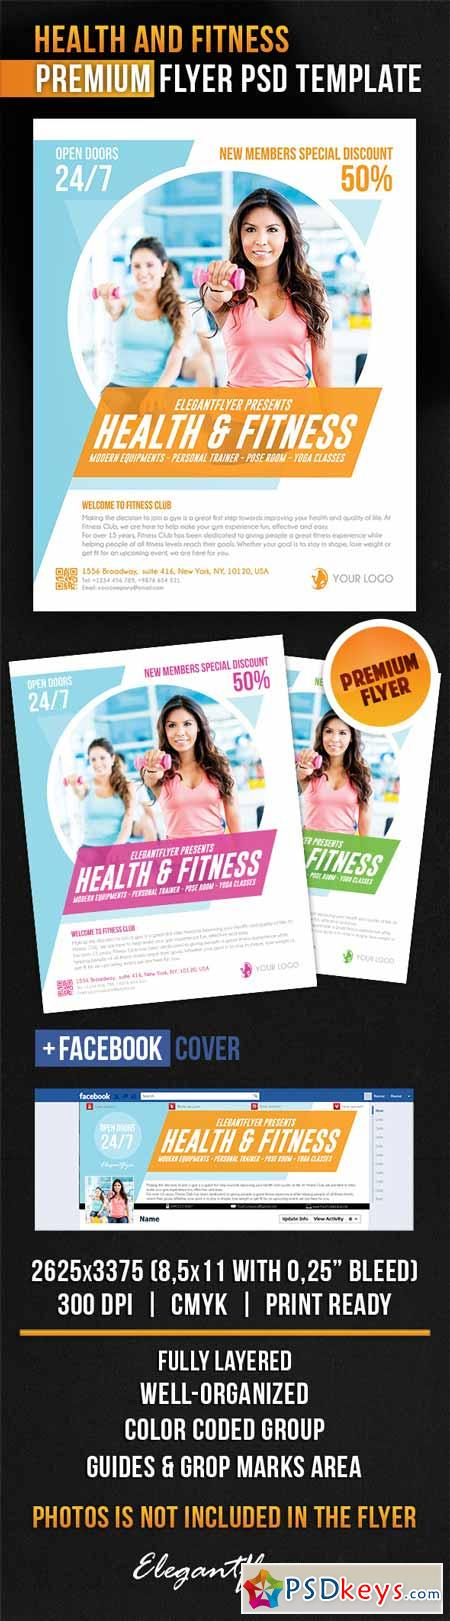 health and fitness flyer templates